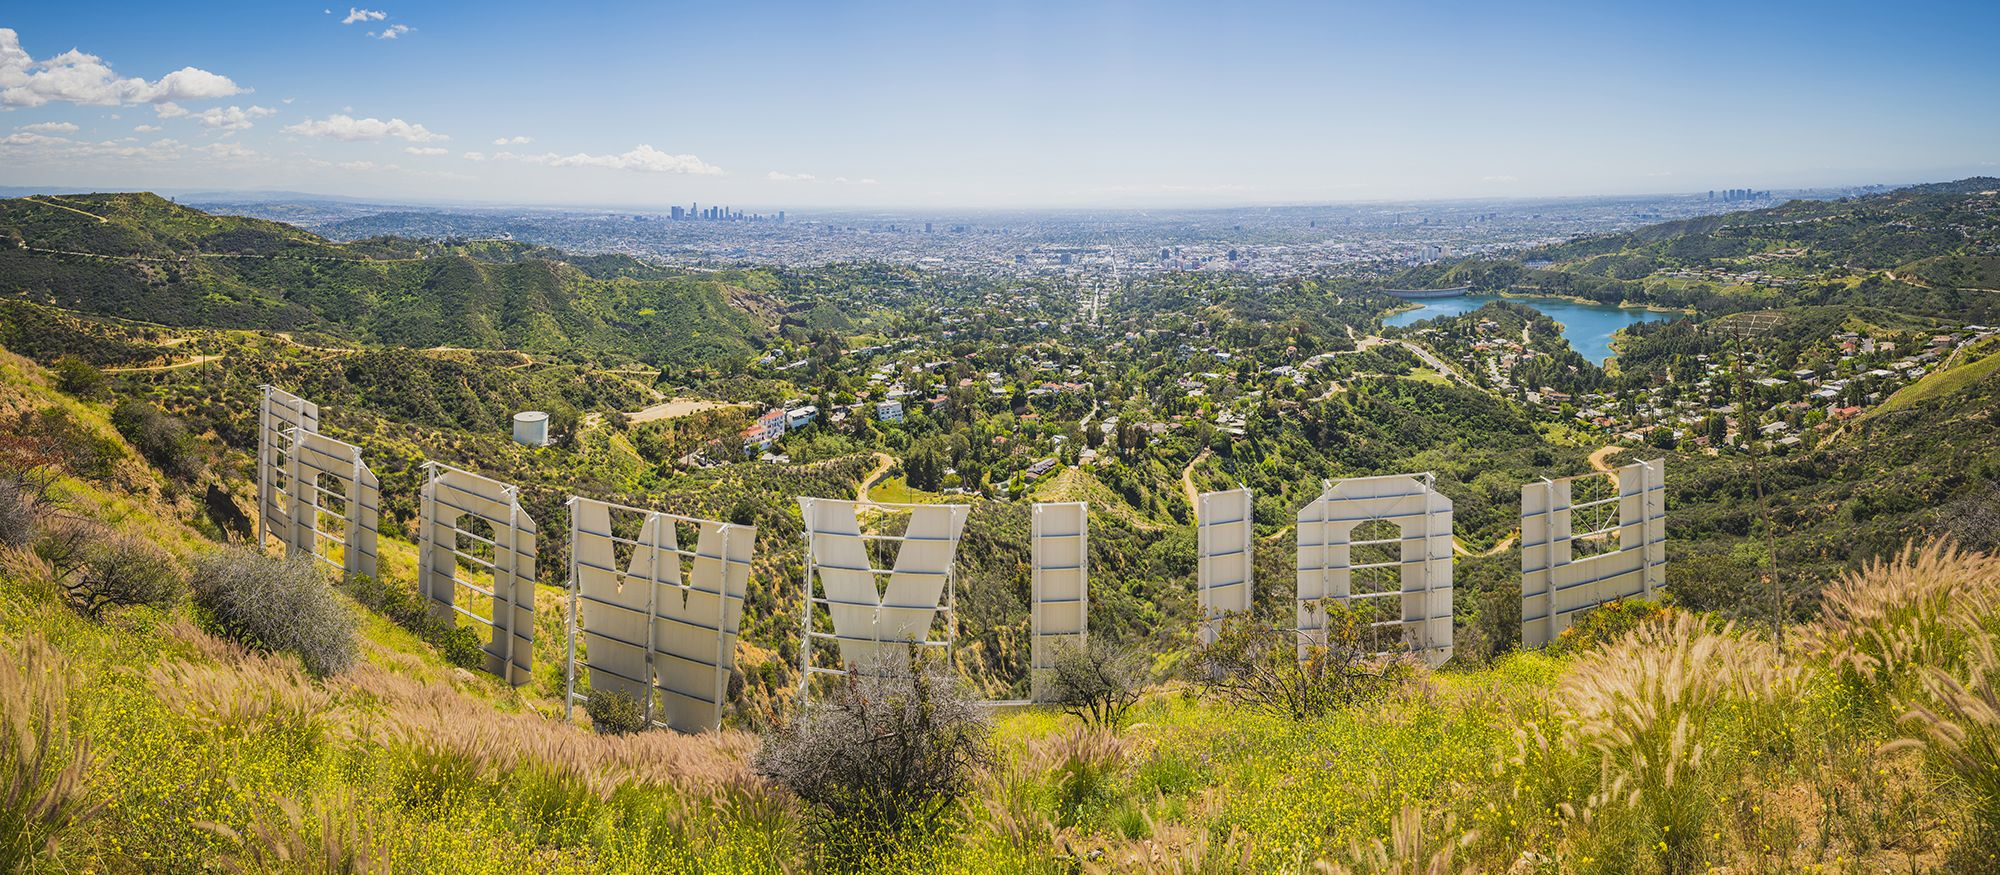 Das Hollywood Sign in Los Angeles